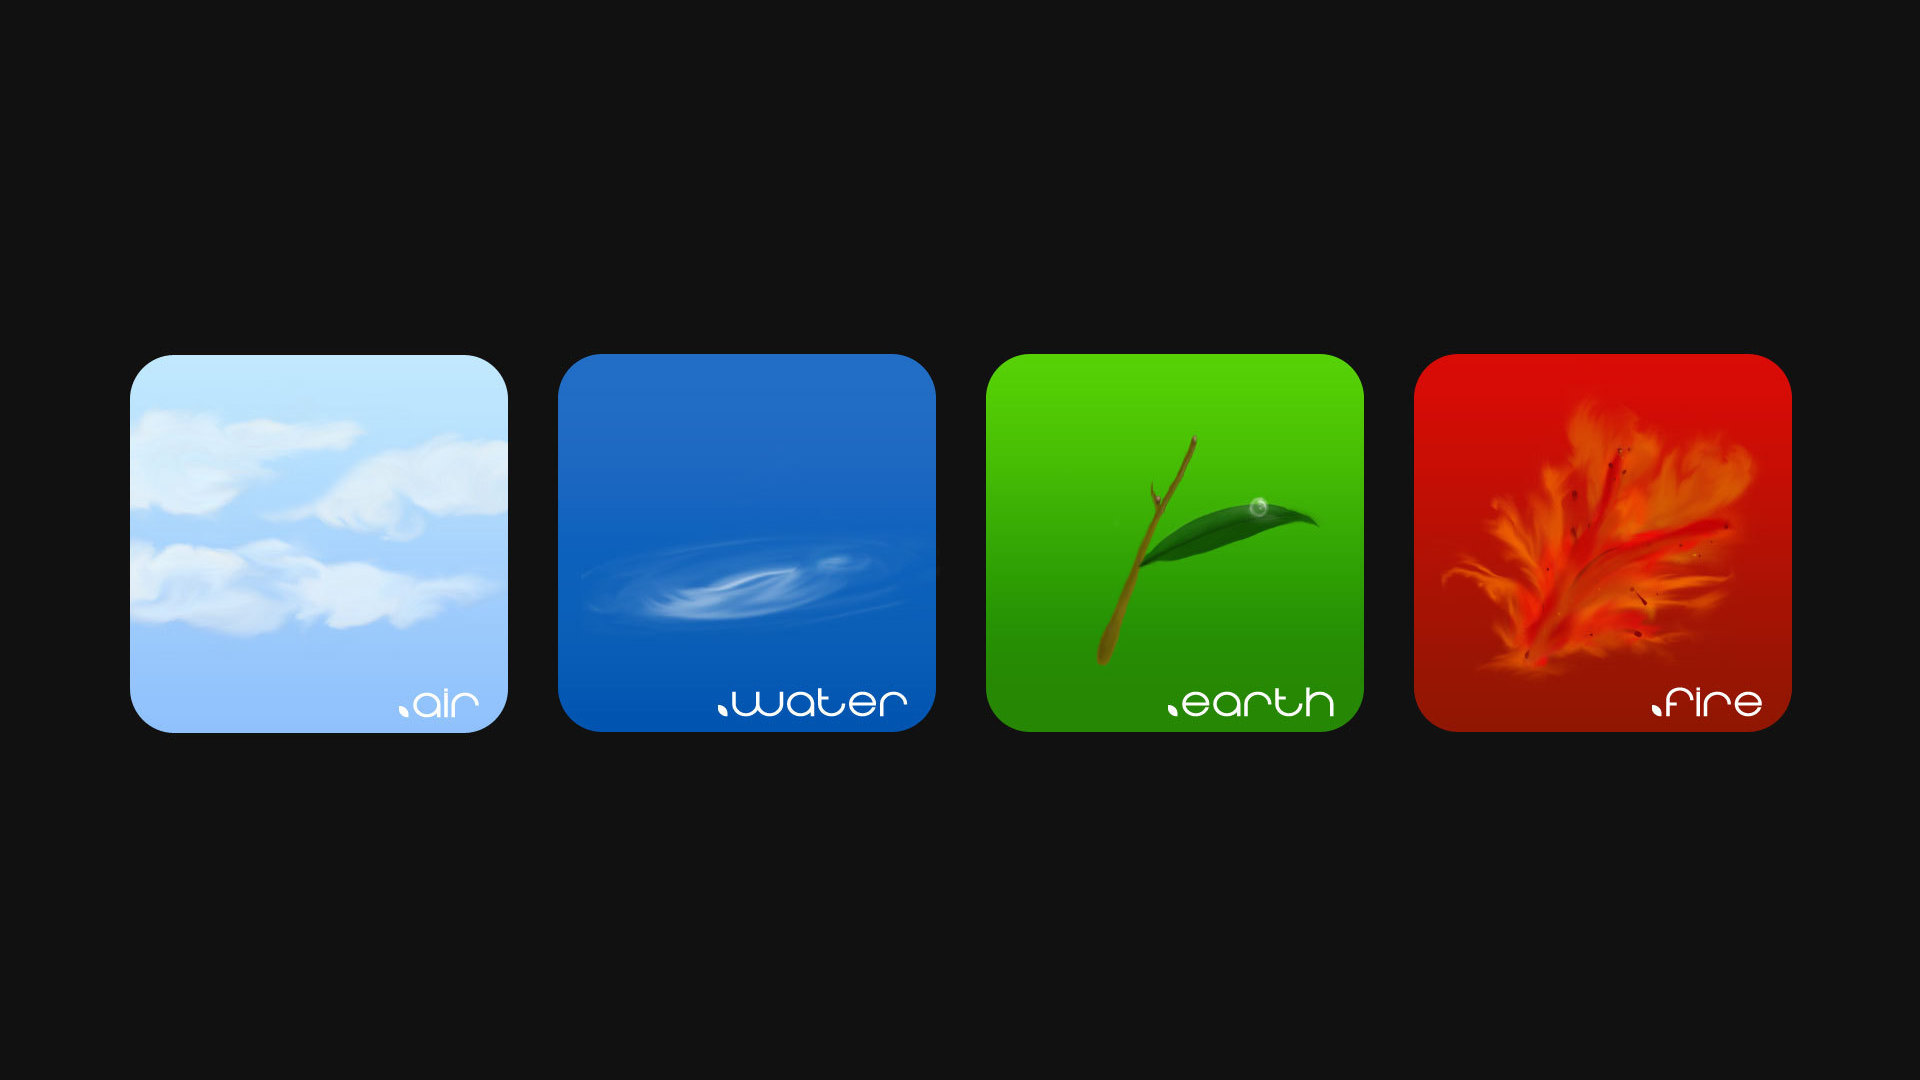 Elements Hd Wallpaper Background Image 1920x1080 Id